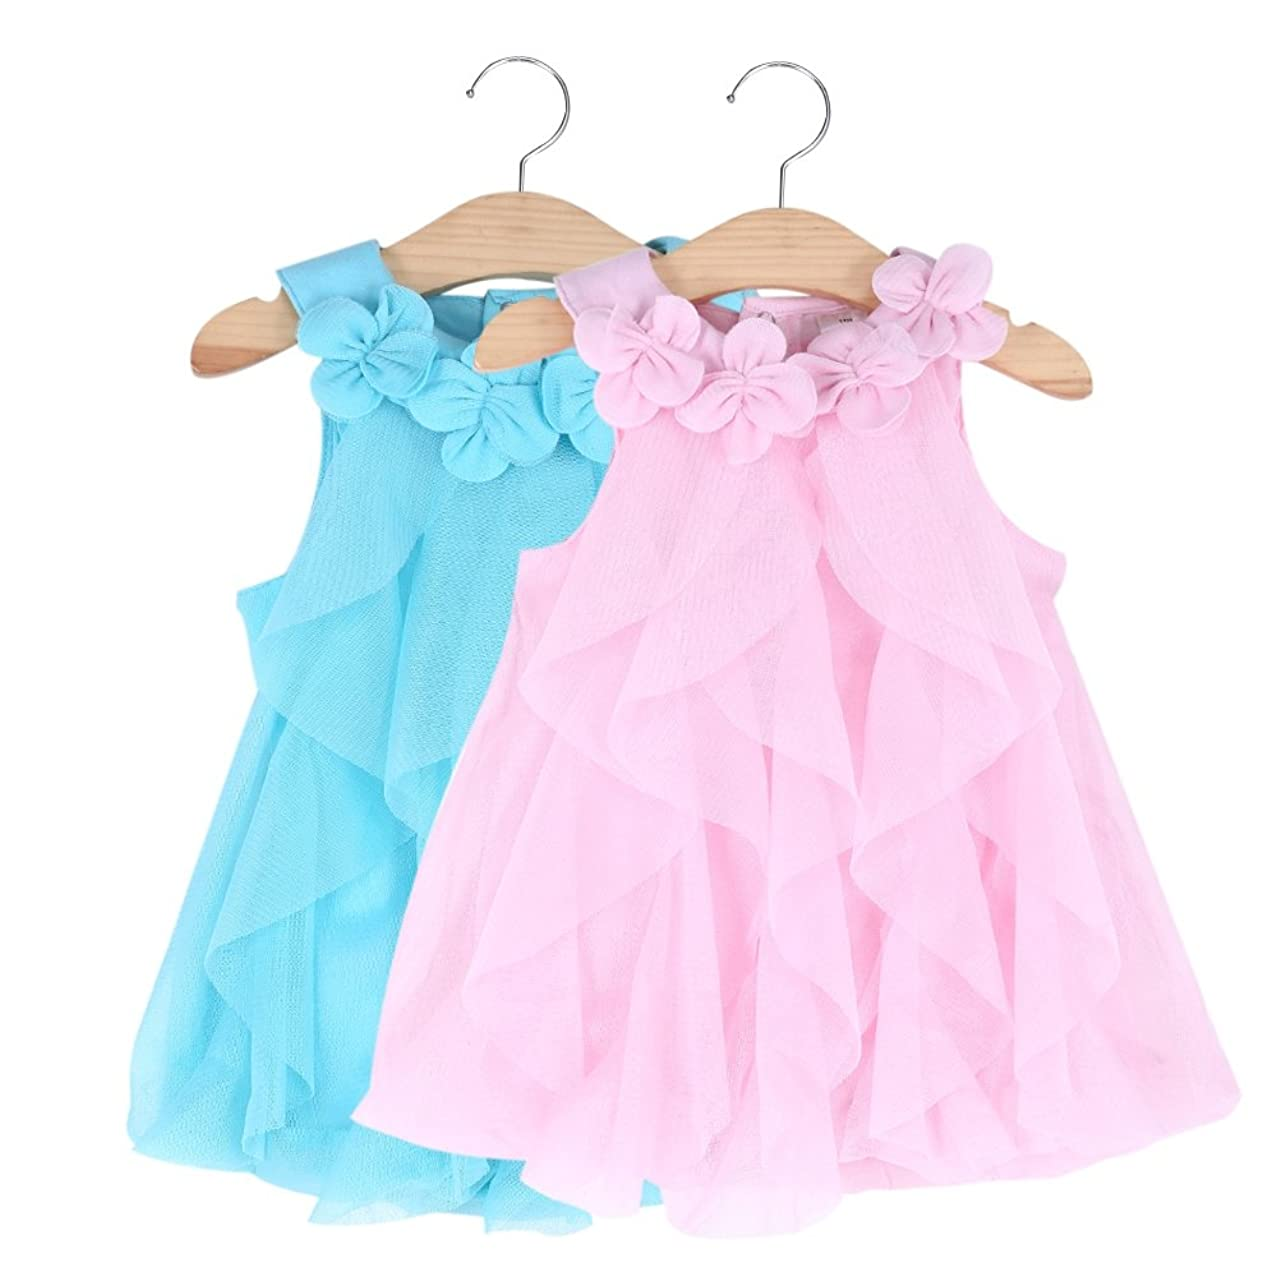 Ourdream 0-24 Months Baby Girla Pageant Party Soft Breathable Rompers Dress